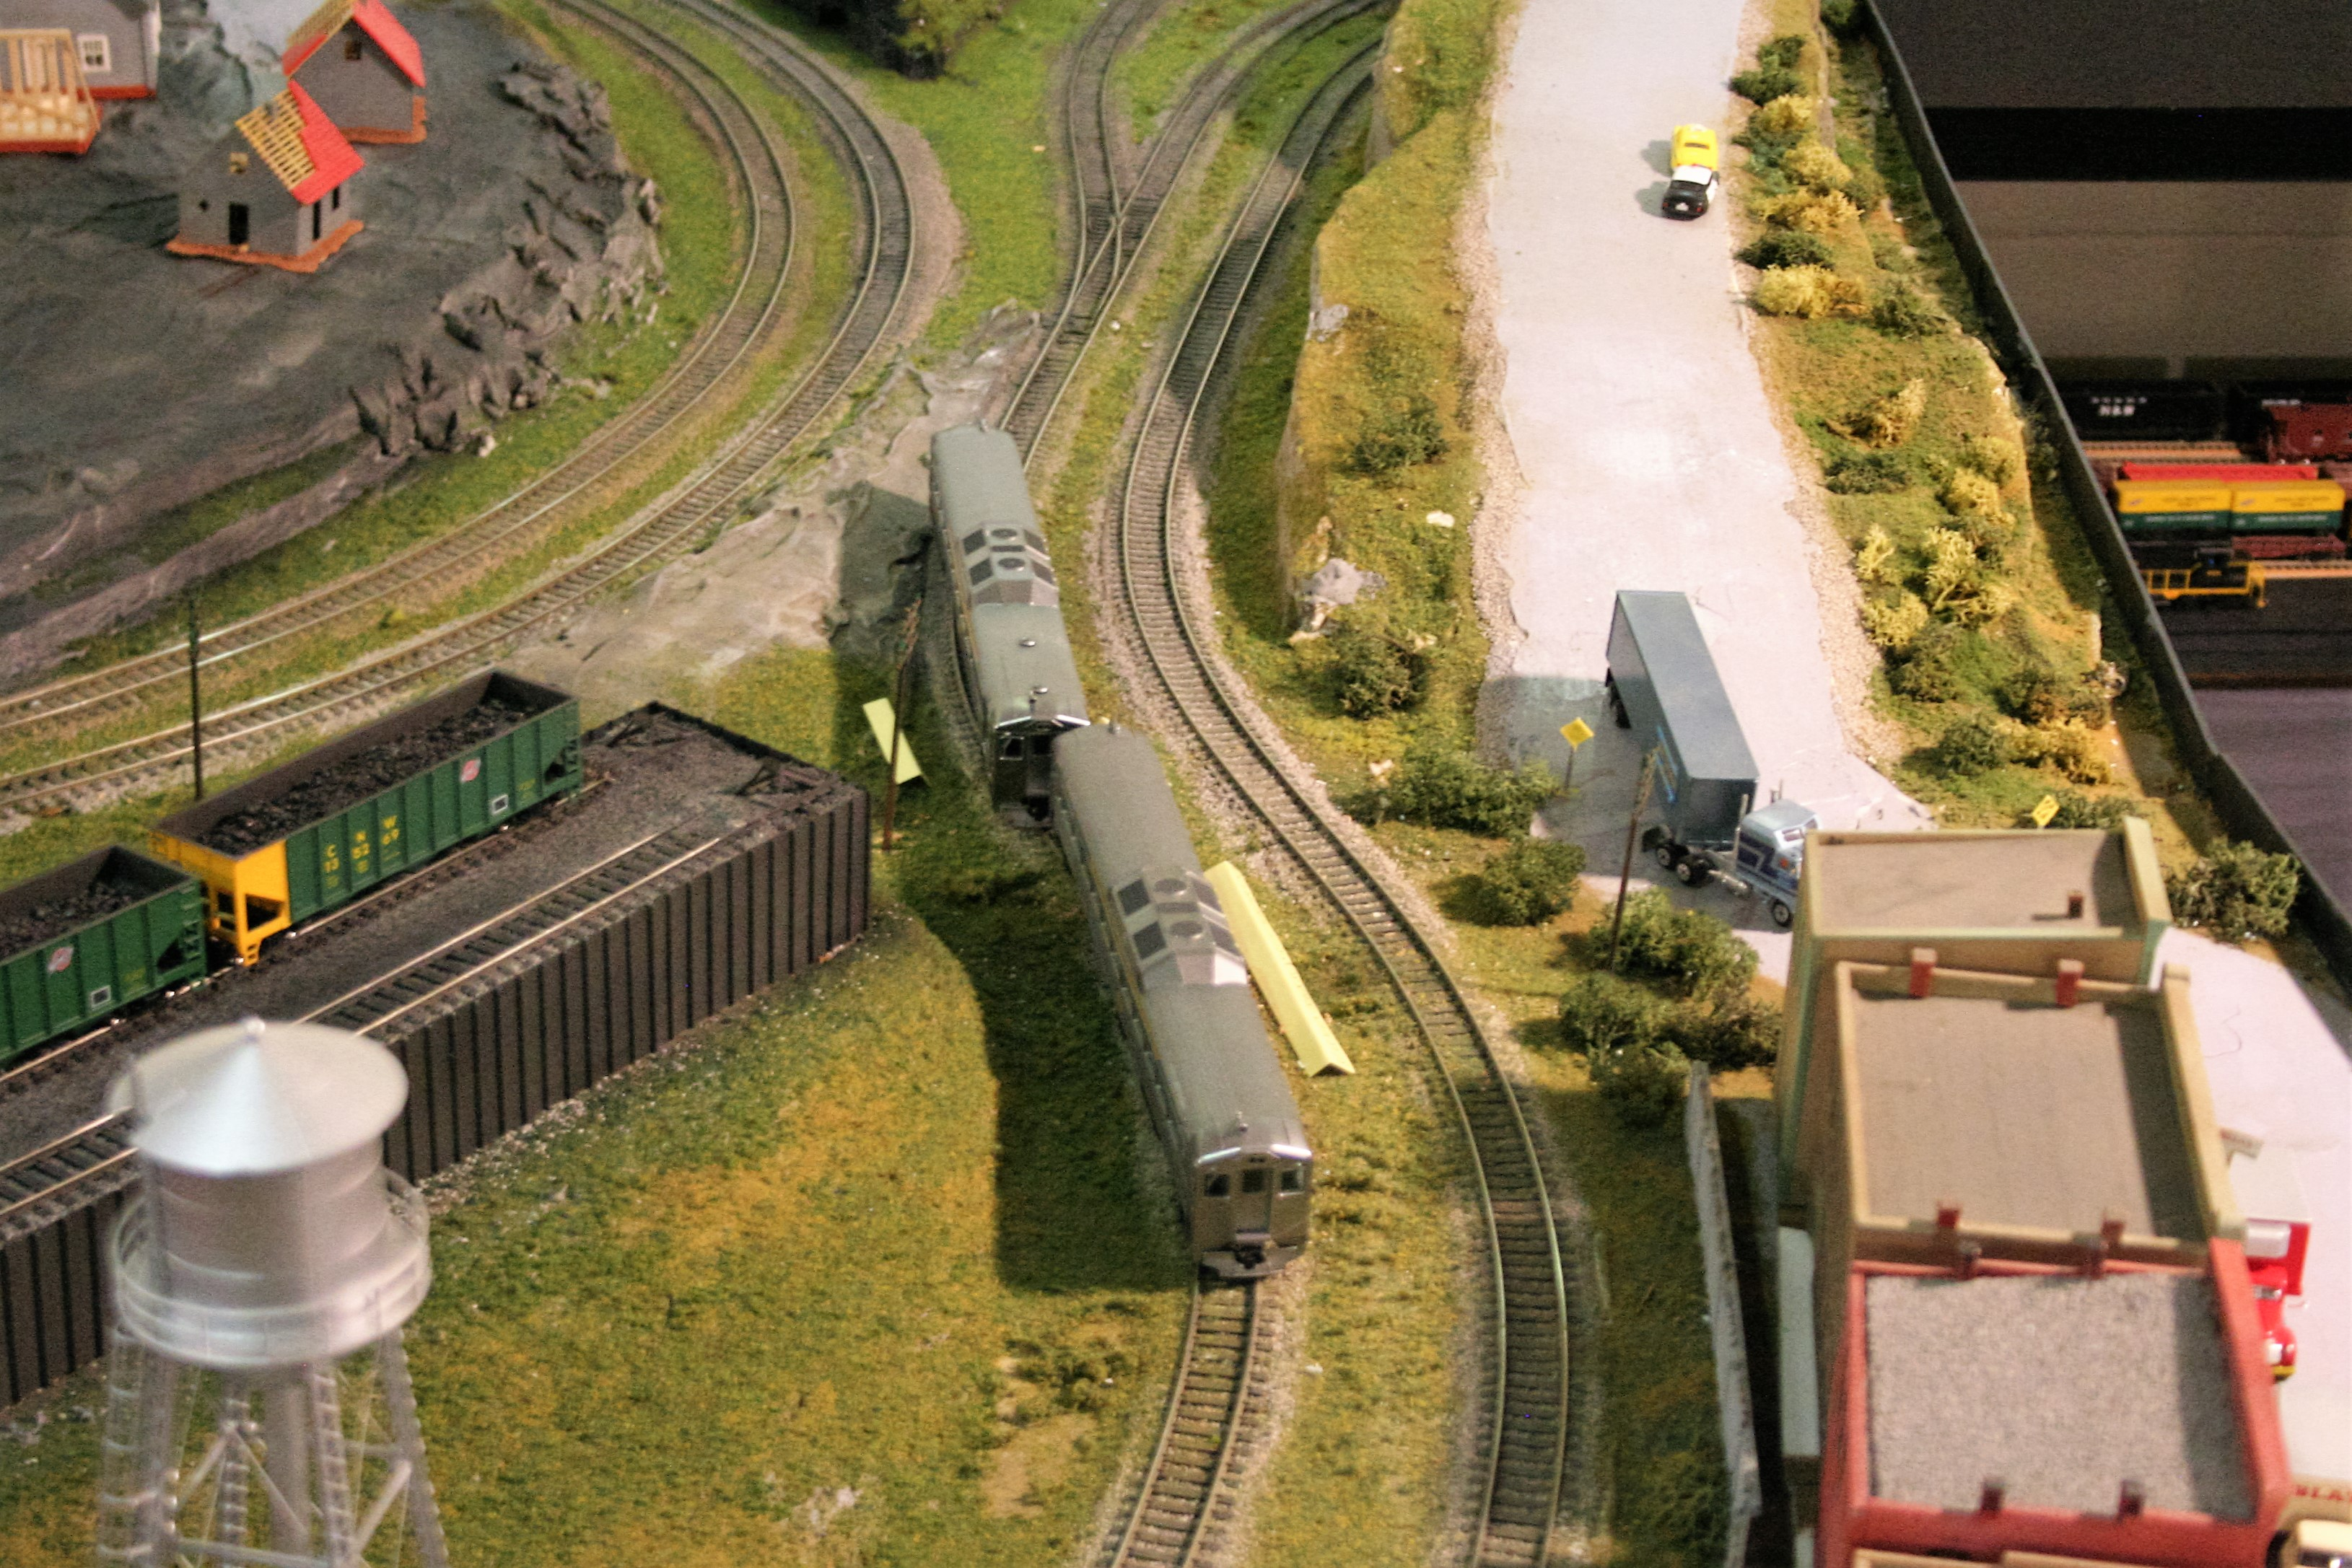 Found an S curve in the layout – KK&L Railroad